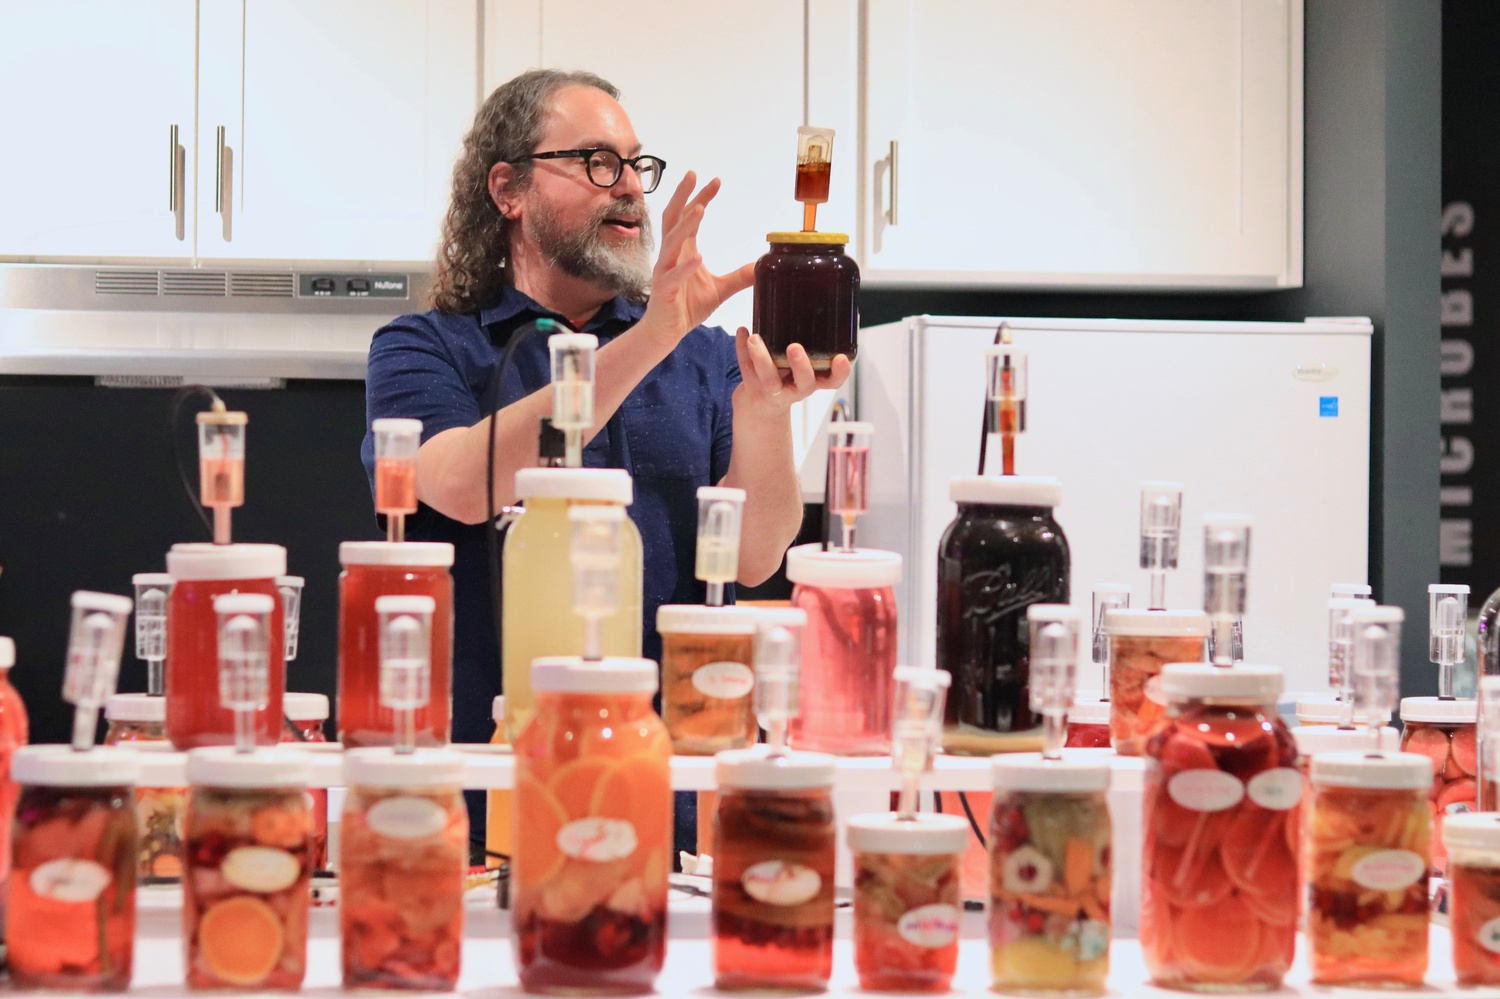 Rosenstock shows the crowd how the microbes in a jar of beer make music as part of his artist talk at the Museum of Natural History.